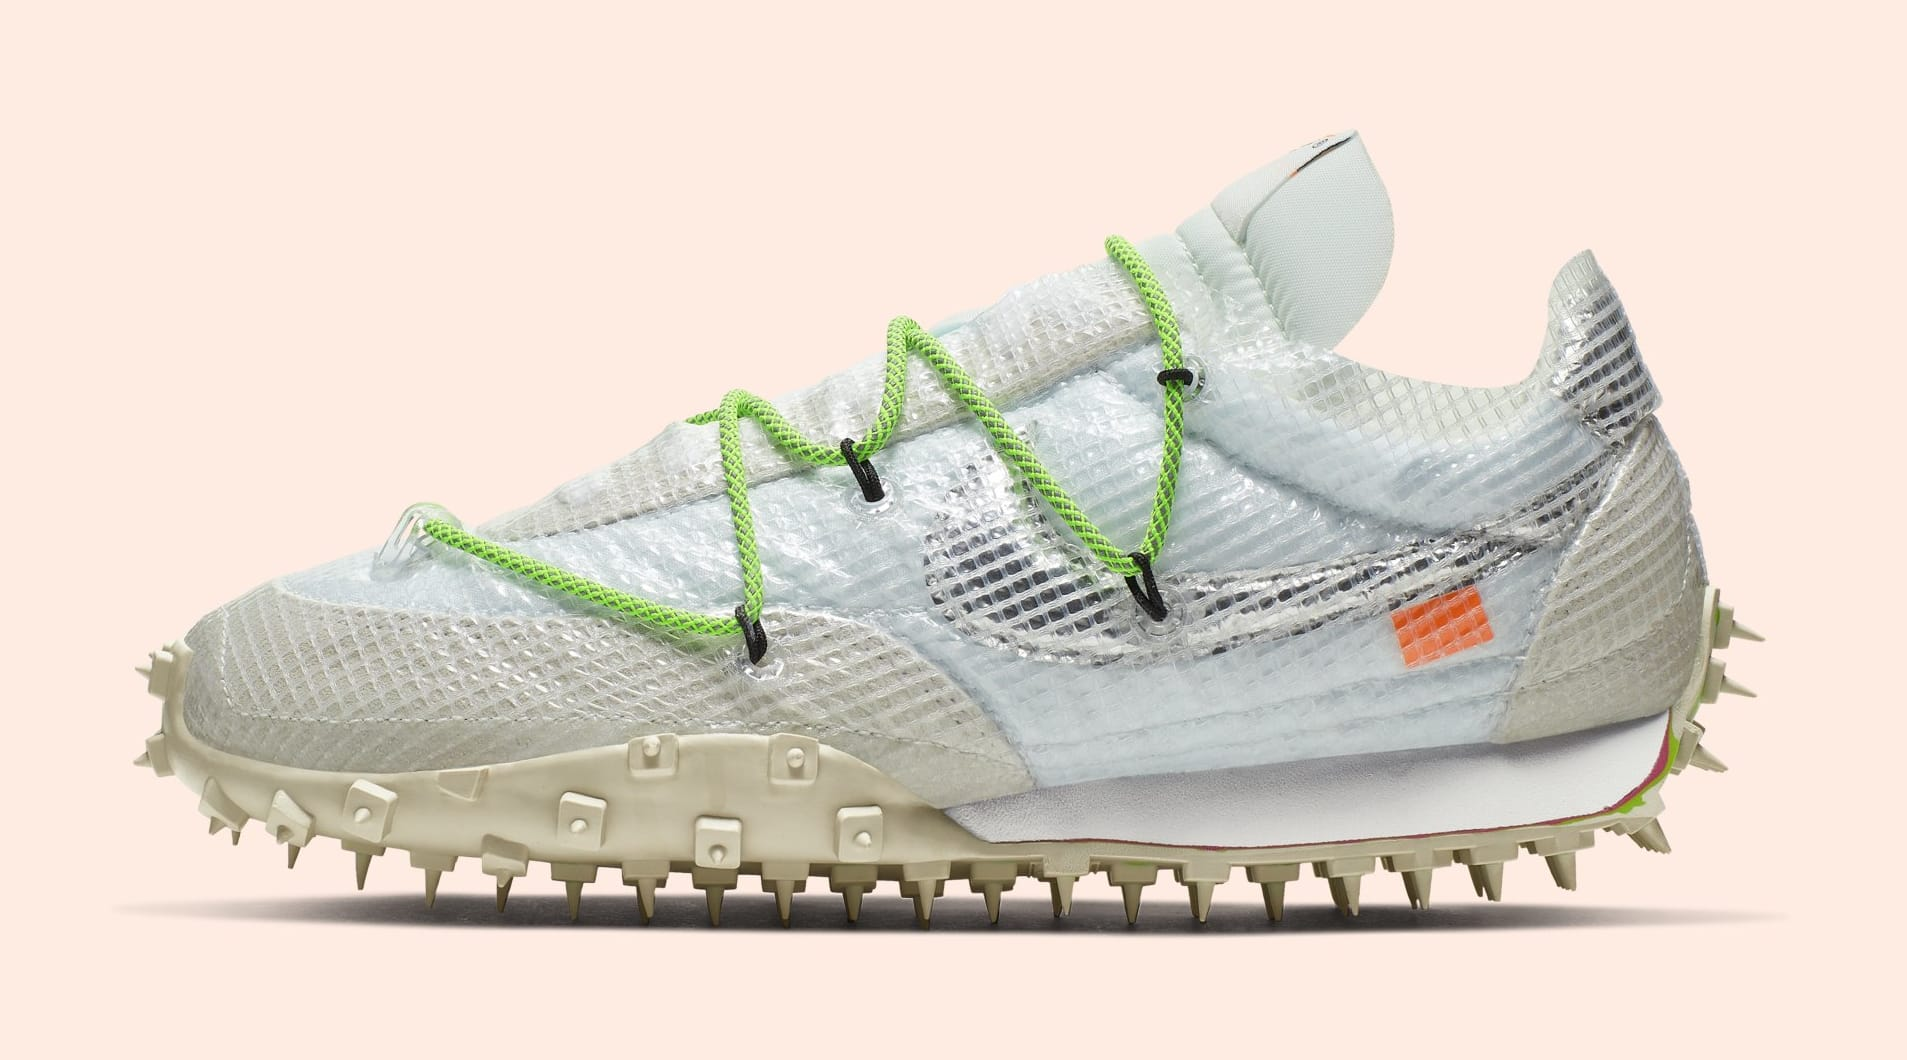 off-white-nike-waffle-racer-womens-electric-green-cd8180-100-lateral